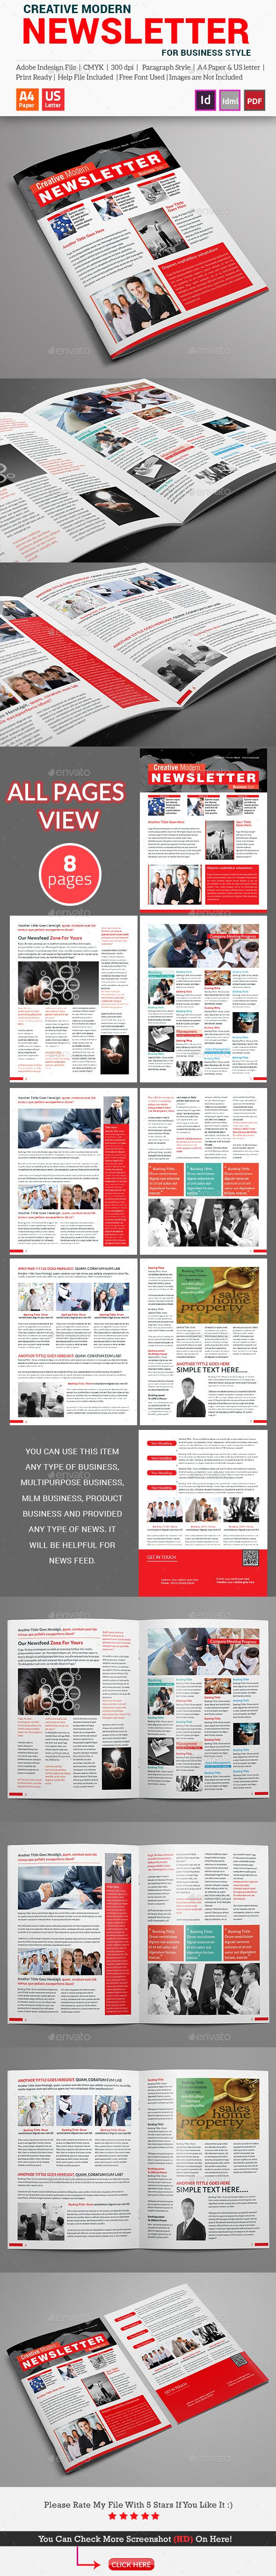 Creative Modern Newsletter For Business Style Business Style - Creative newsletter design templates